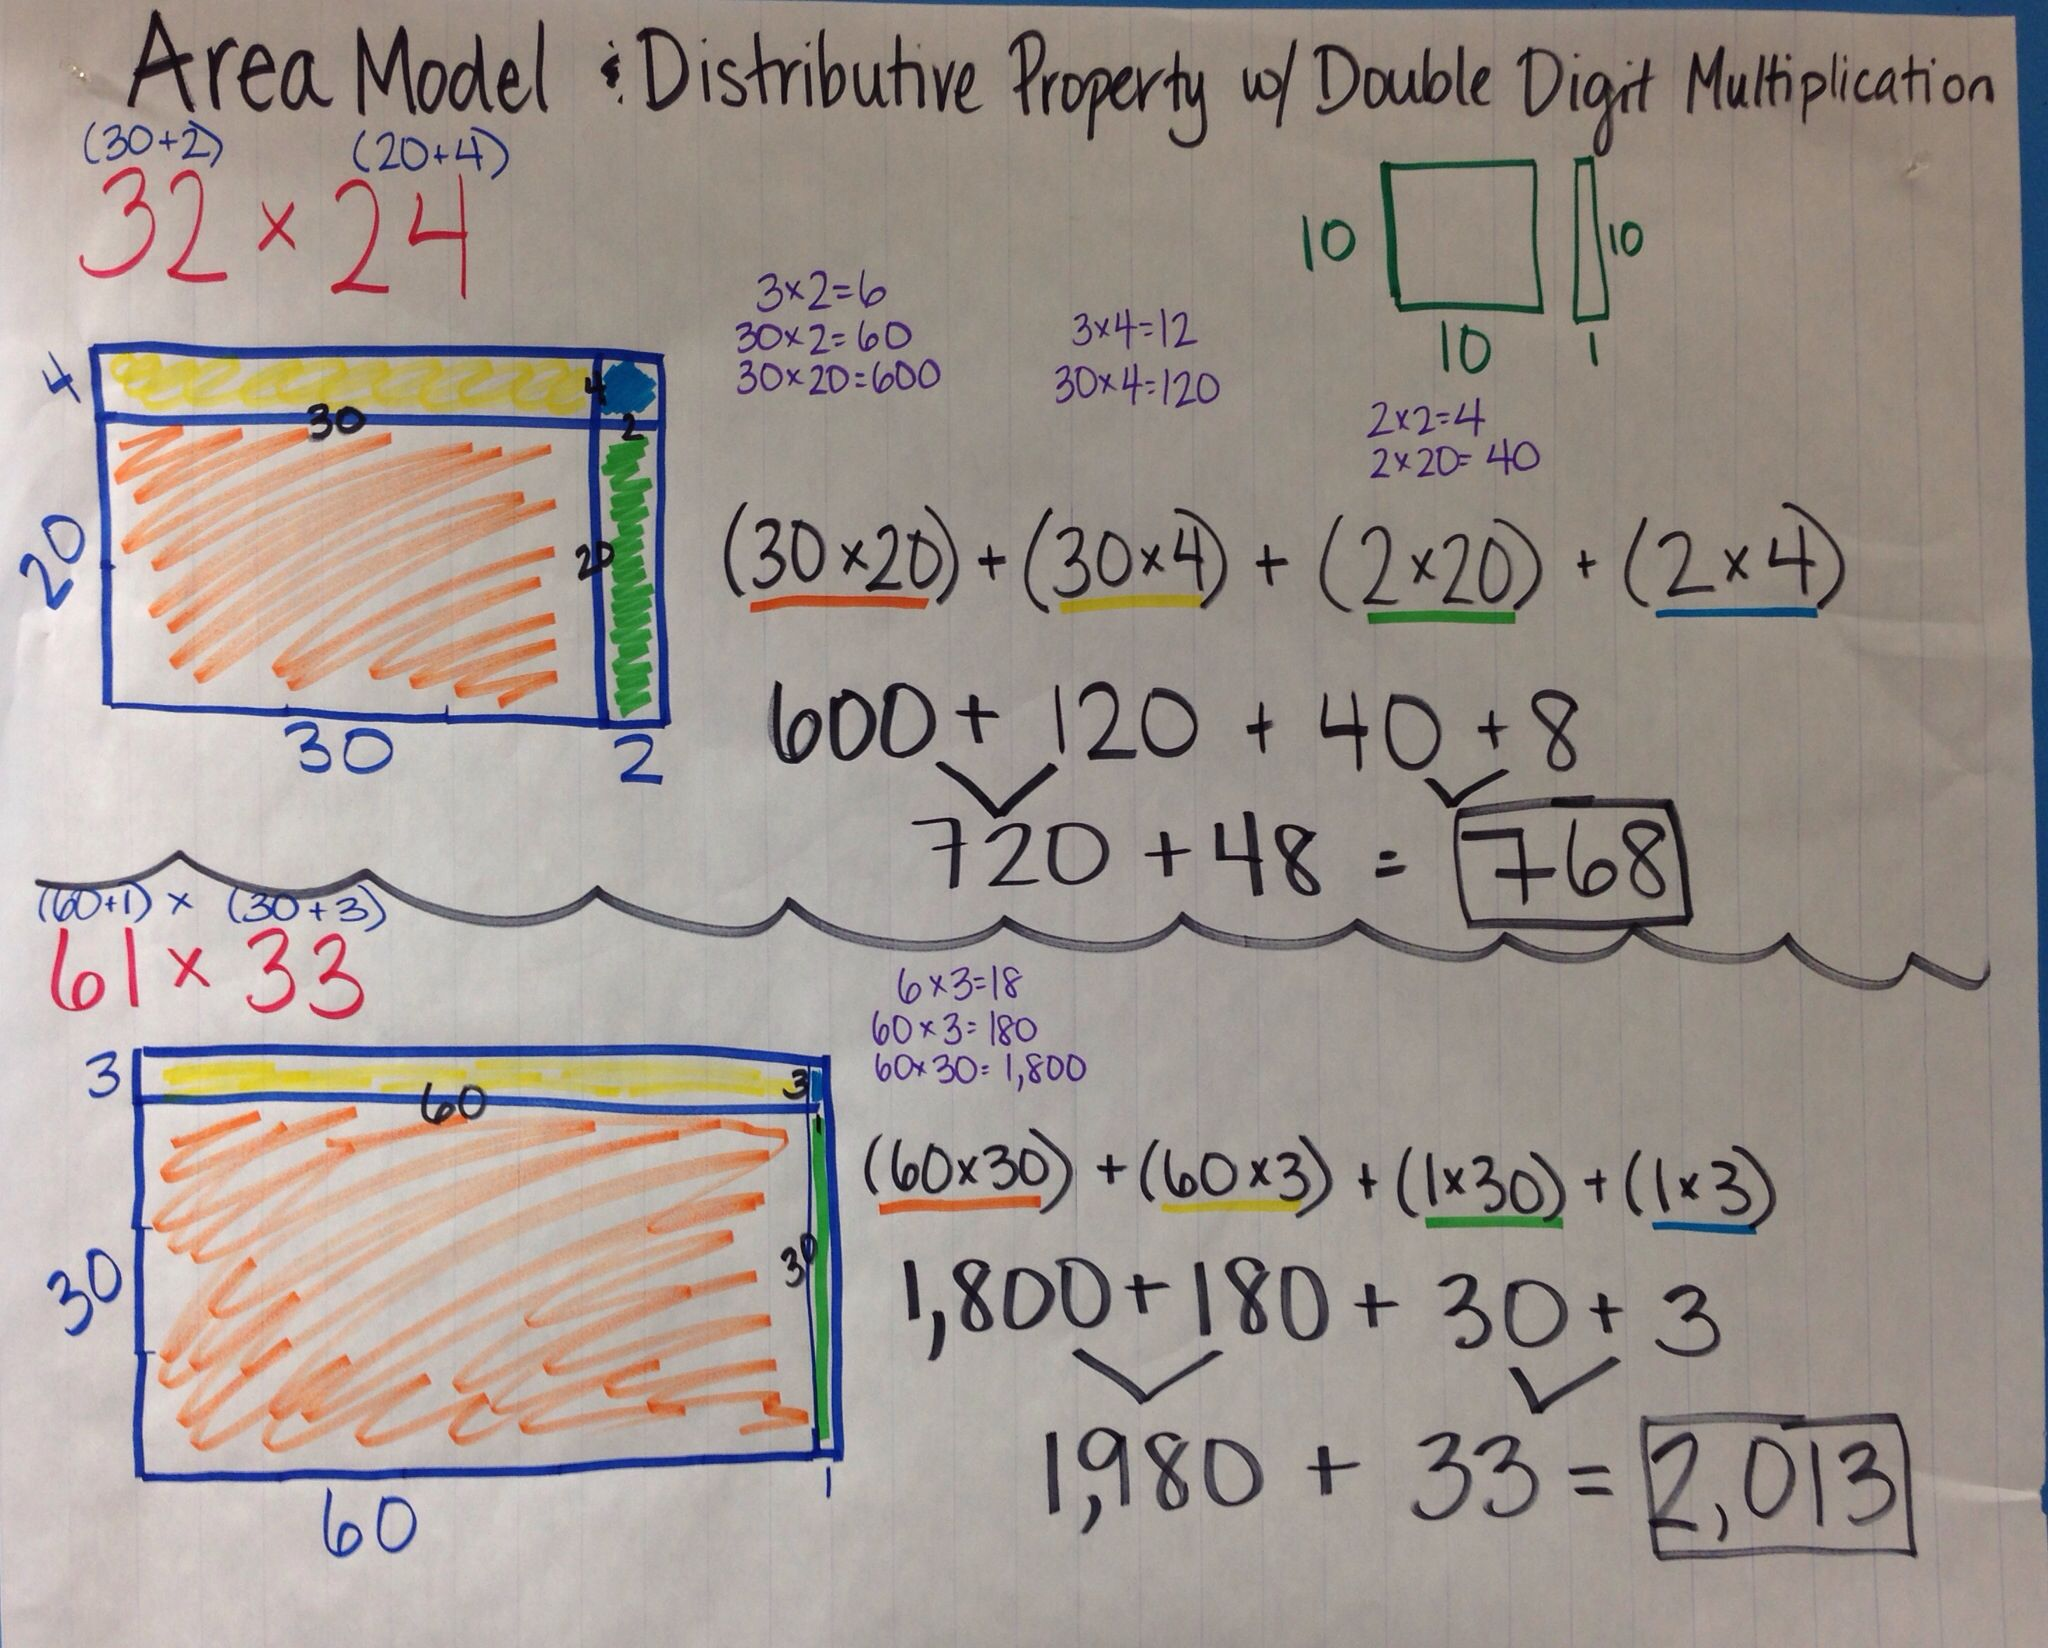 area model and distributive property with double digit multiplication maths pinterest. Black Bedroom Furniture Sets. Home Design Ideas